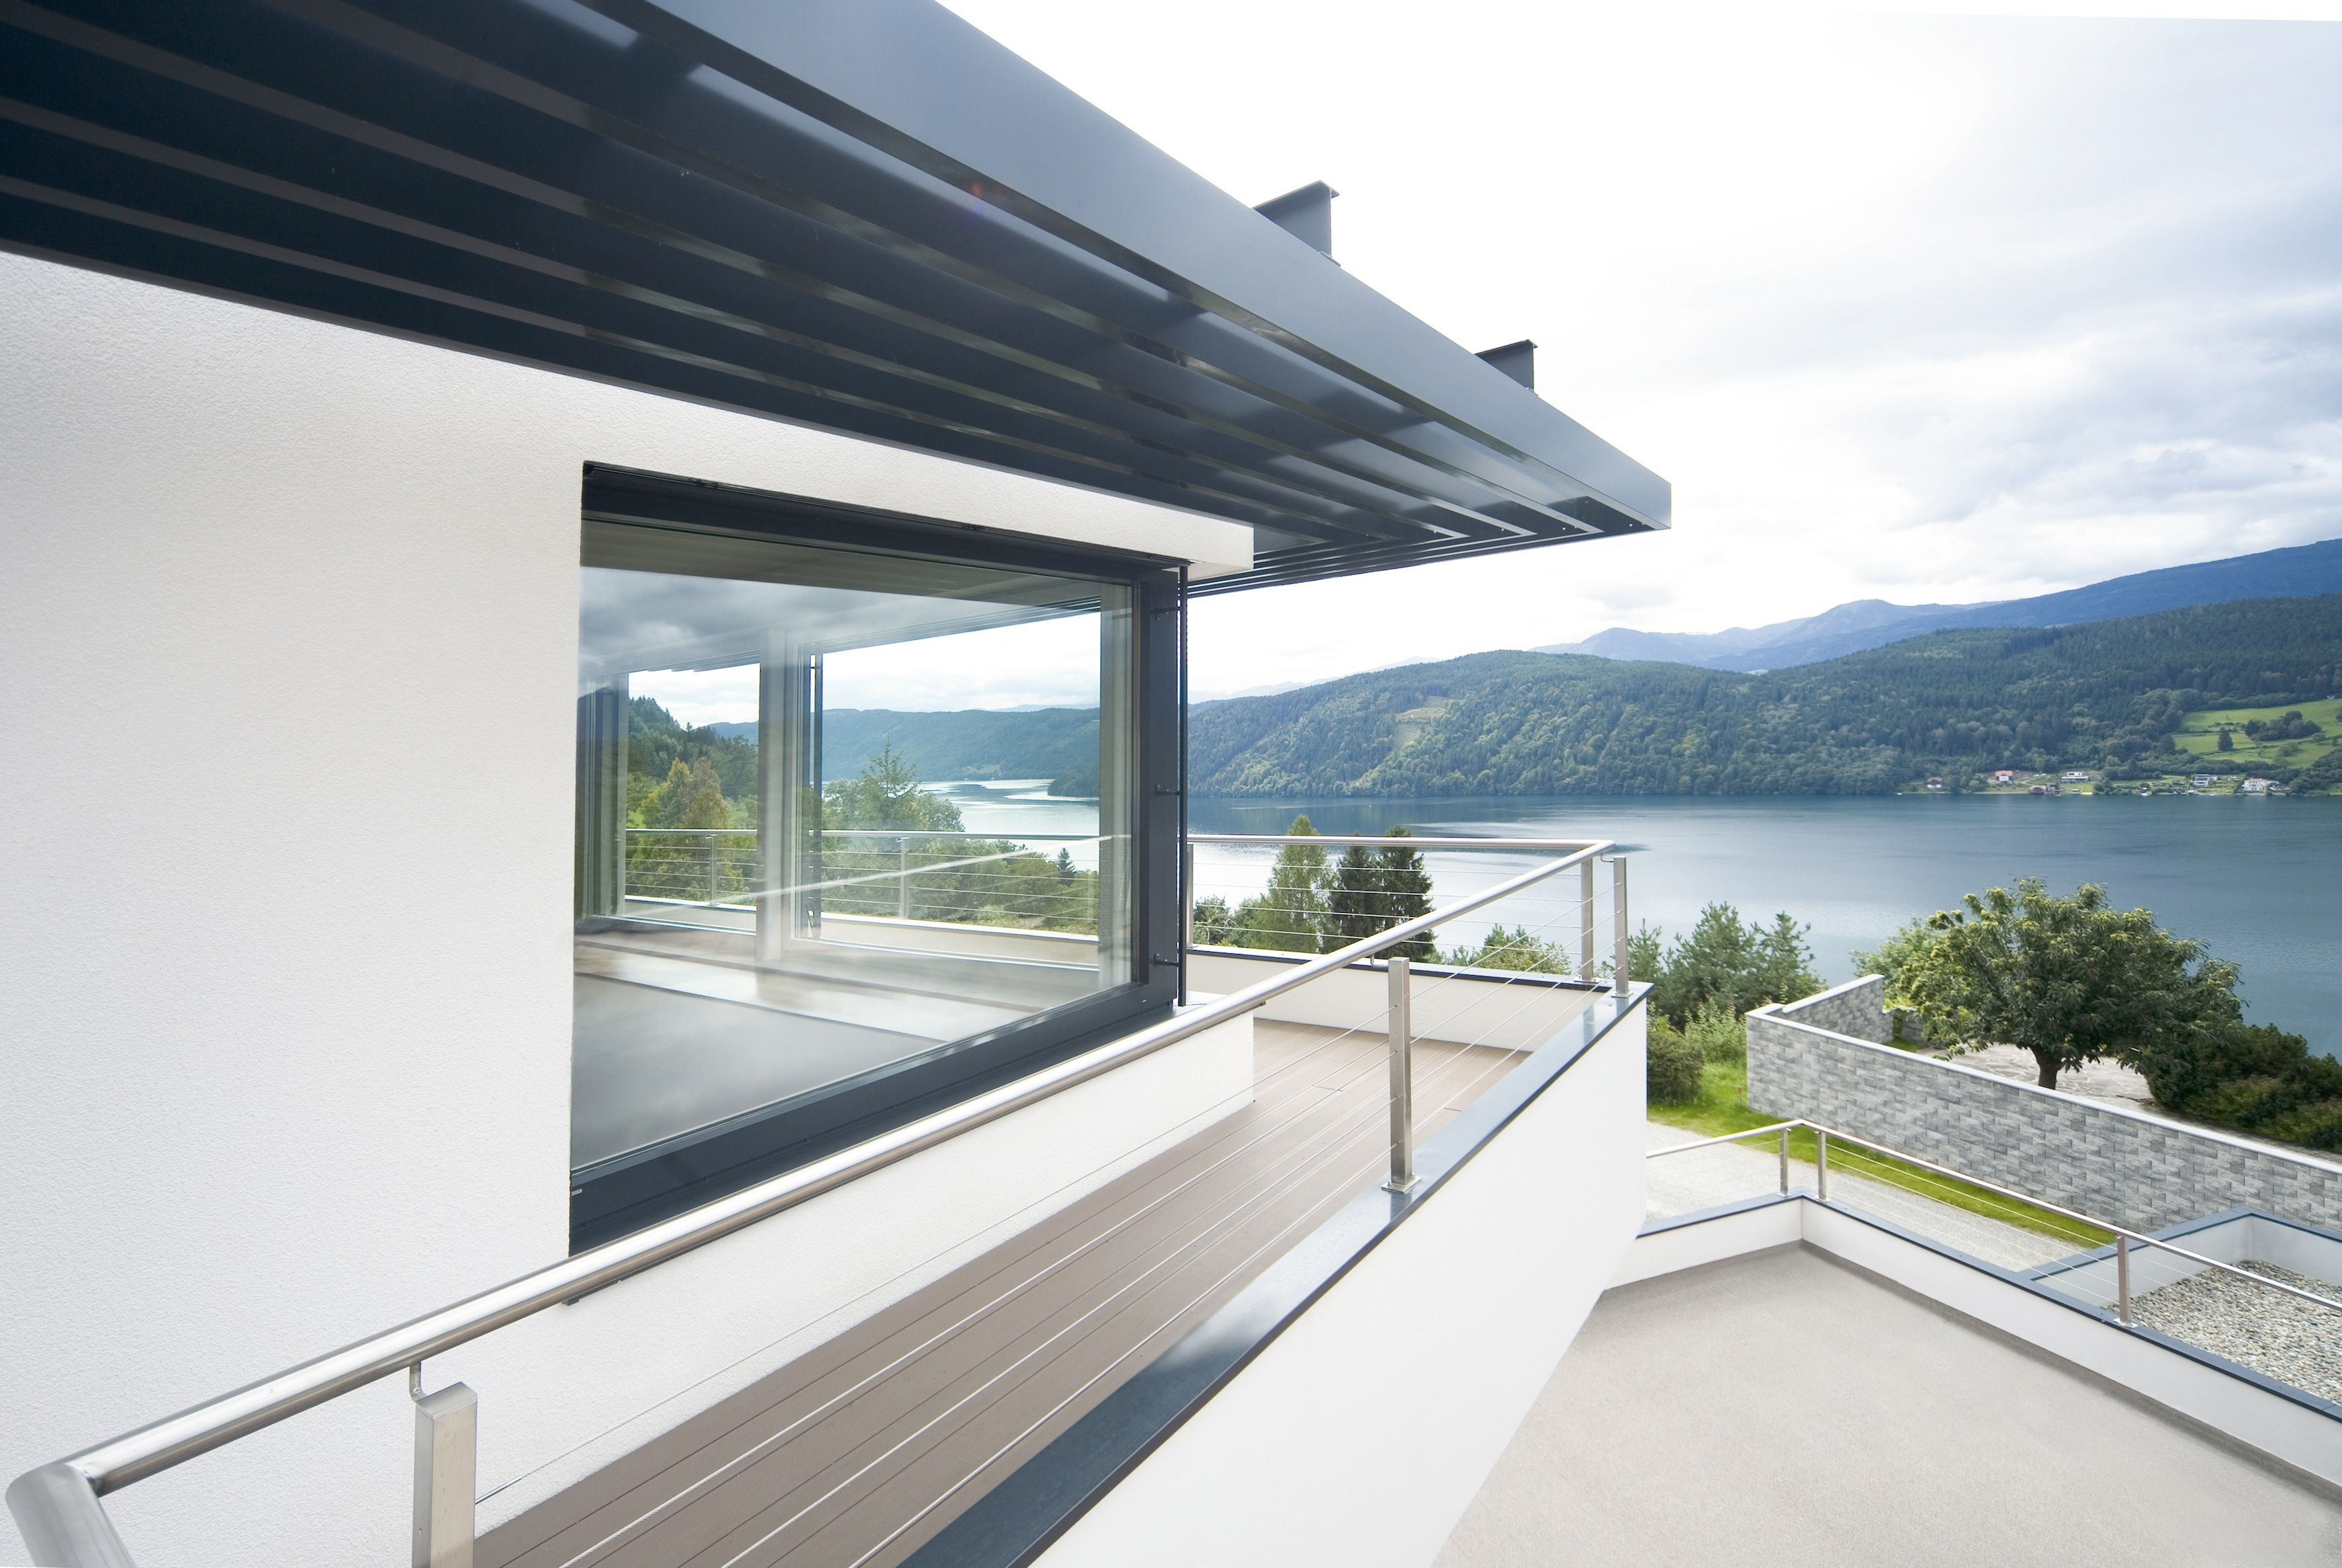 Goals a house overlooking a captivating scene a lake for Internorm fenster